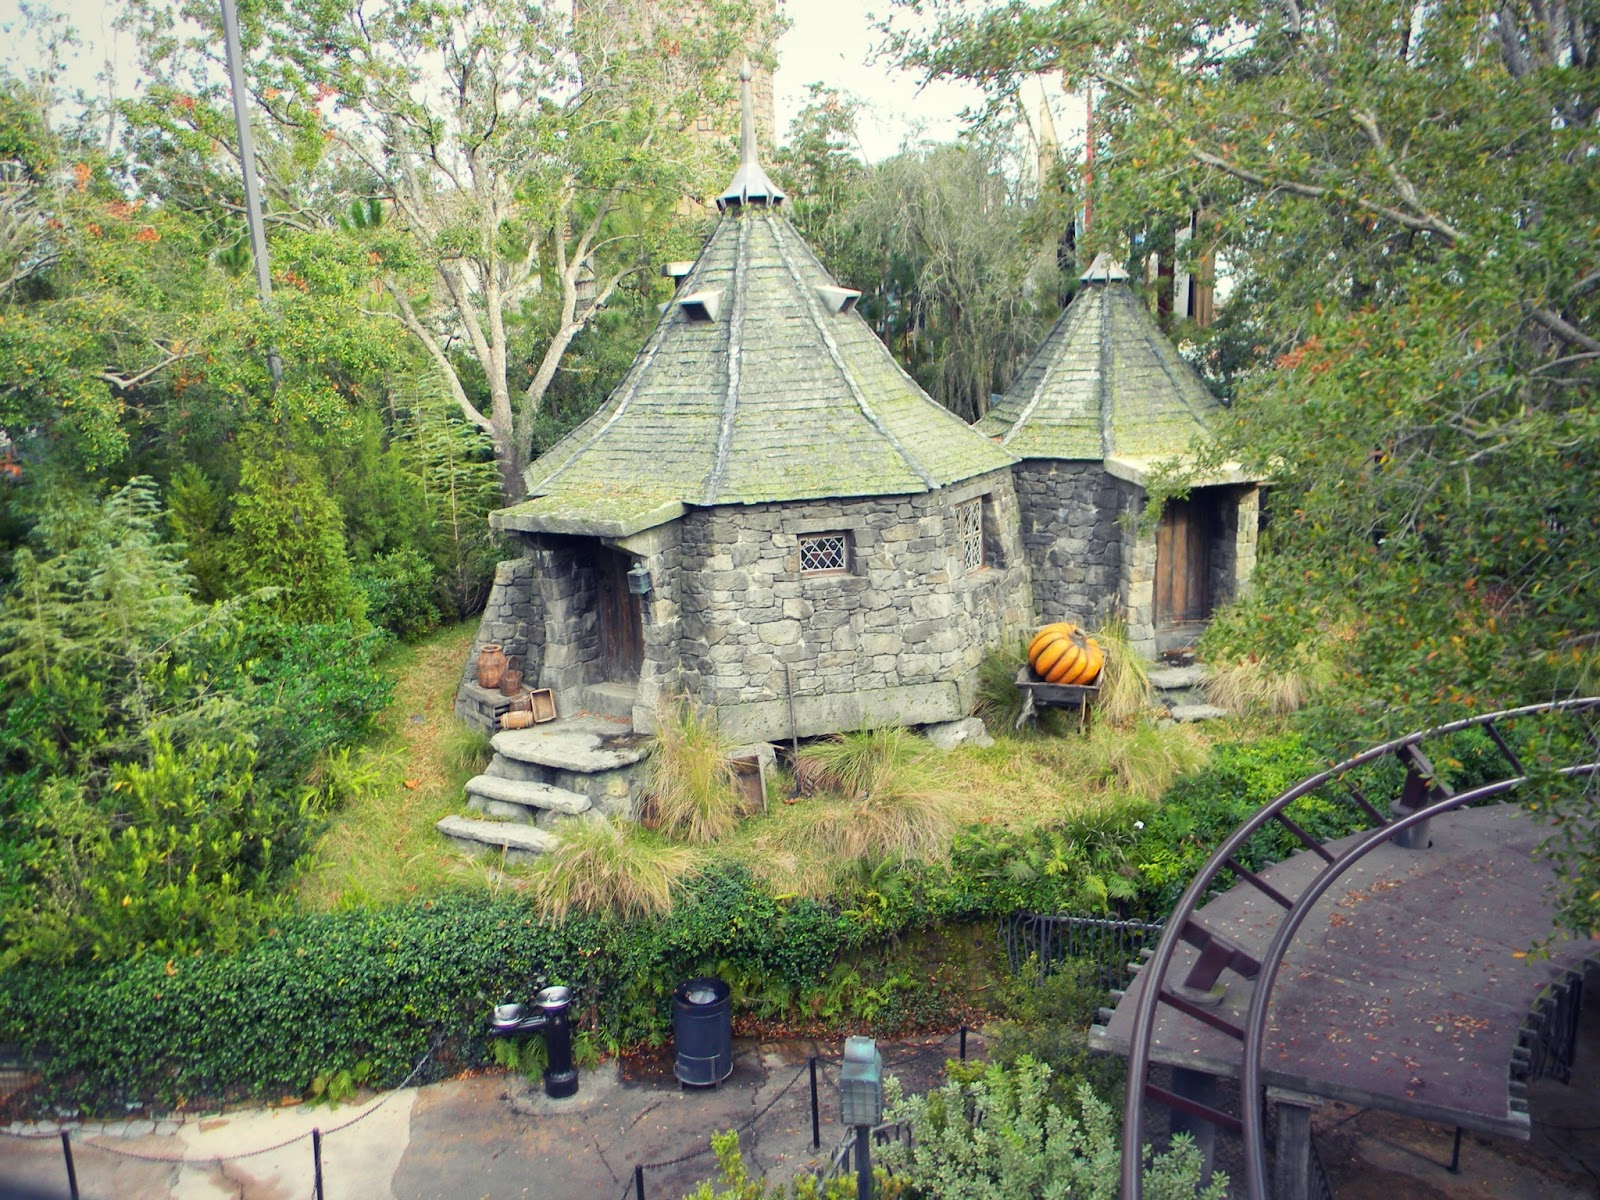 Harry potter and the rest of universal studios insert What house was hagrid in